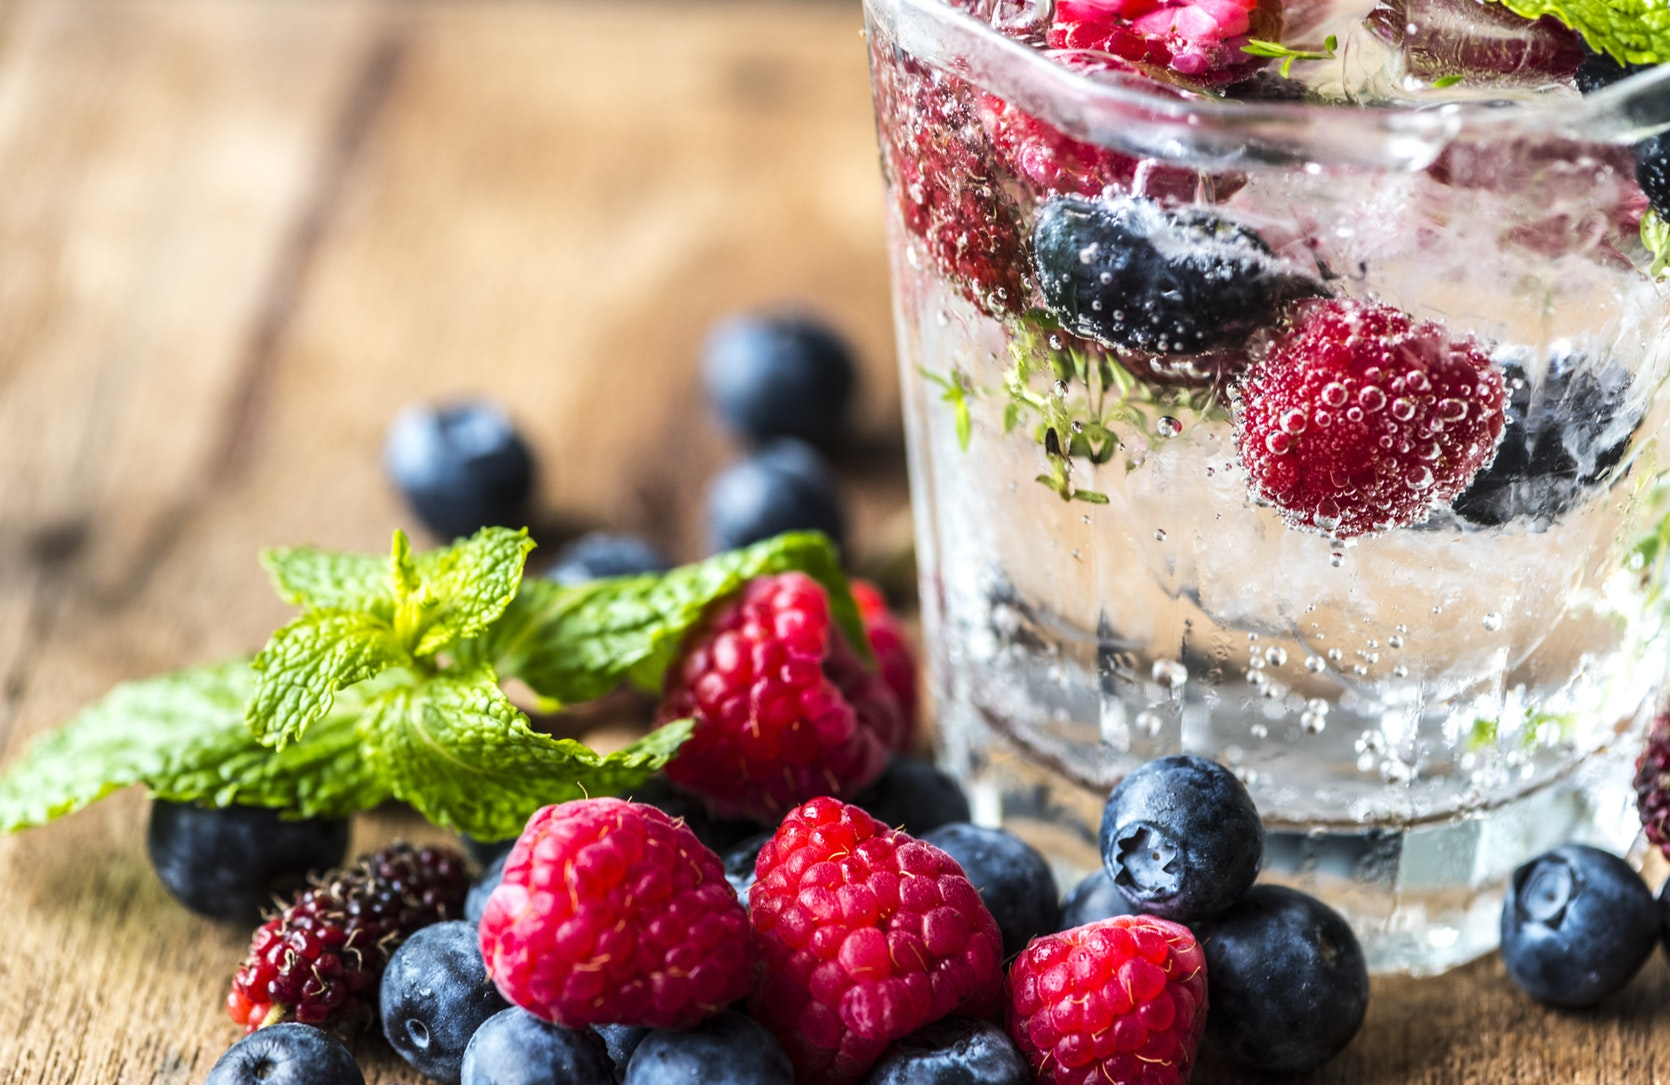 If you want to spice up your plain water, consider adding in some of your favourite fruits and have infused water instead.